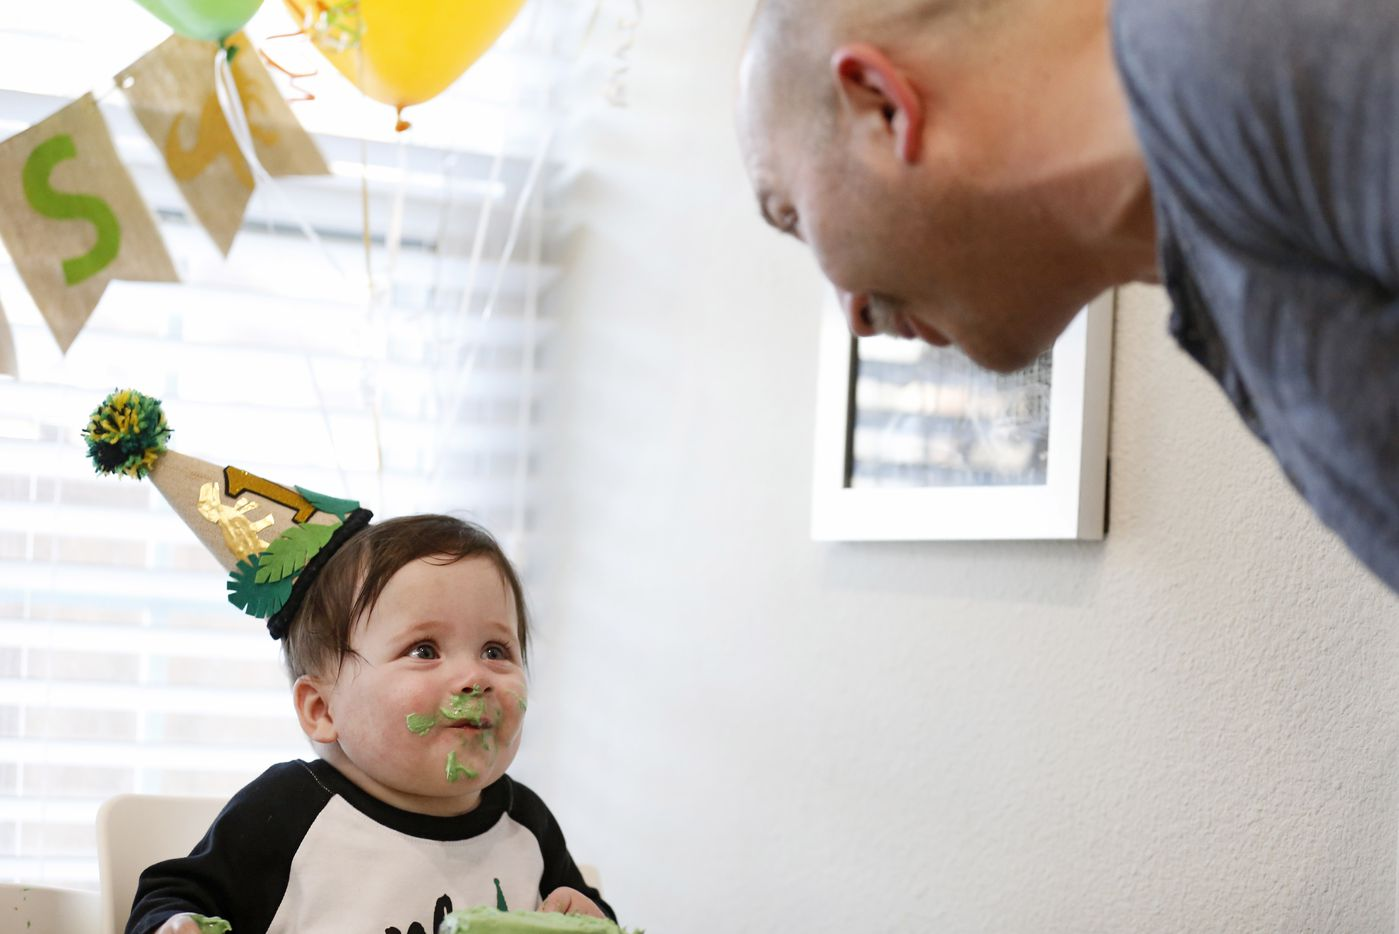 Hudson Marr looks at his father Chris Marr while eating cake during his one year birthday party at their home on Monday, March 15, 2021in Grapevine, Texas.